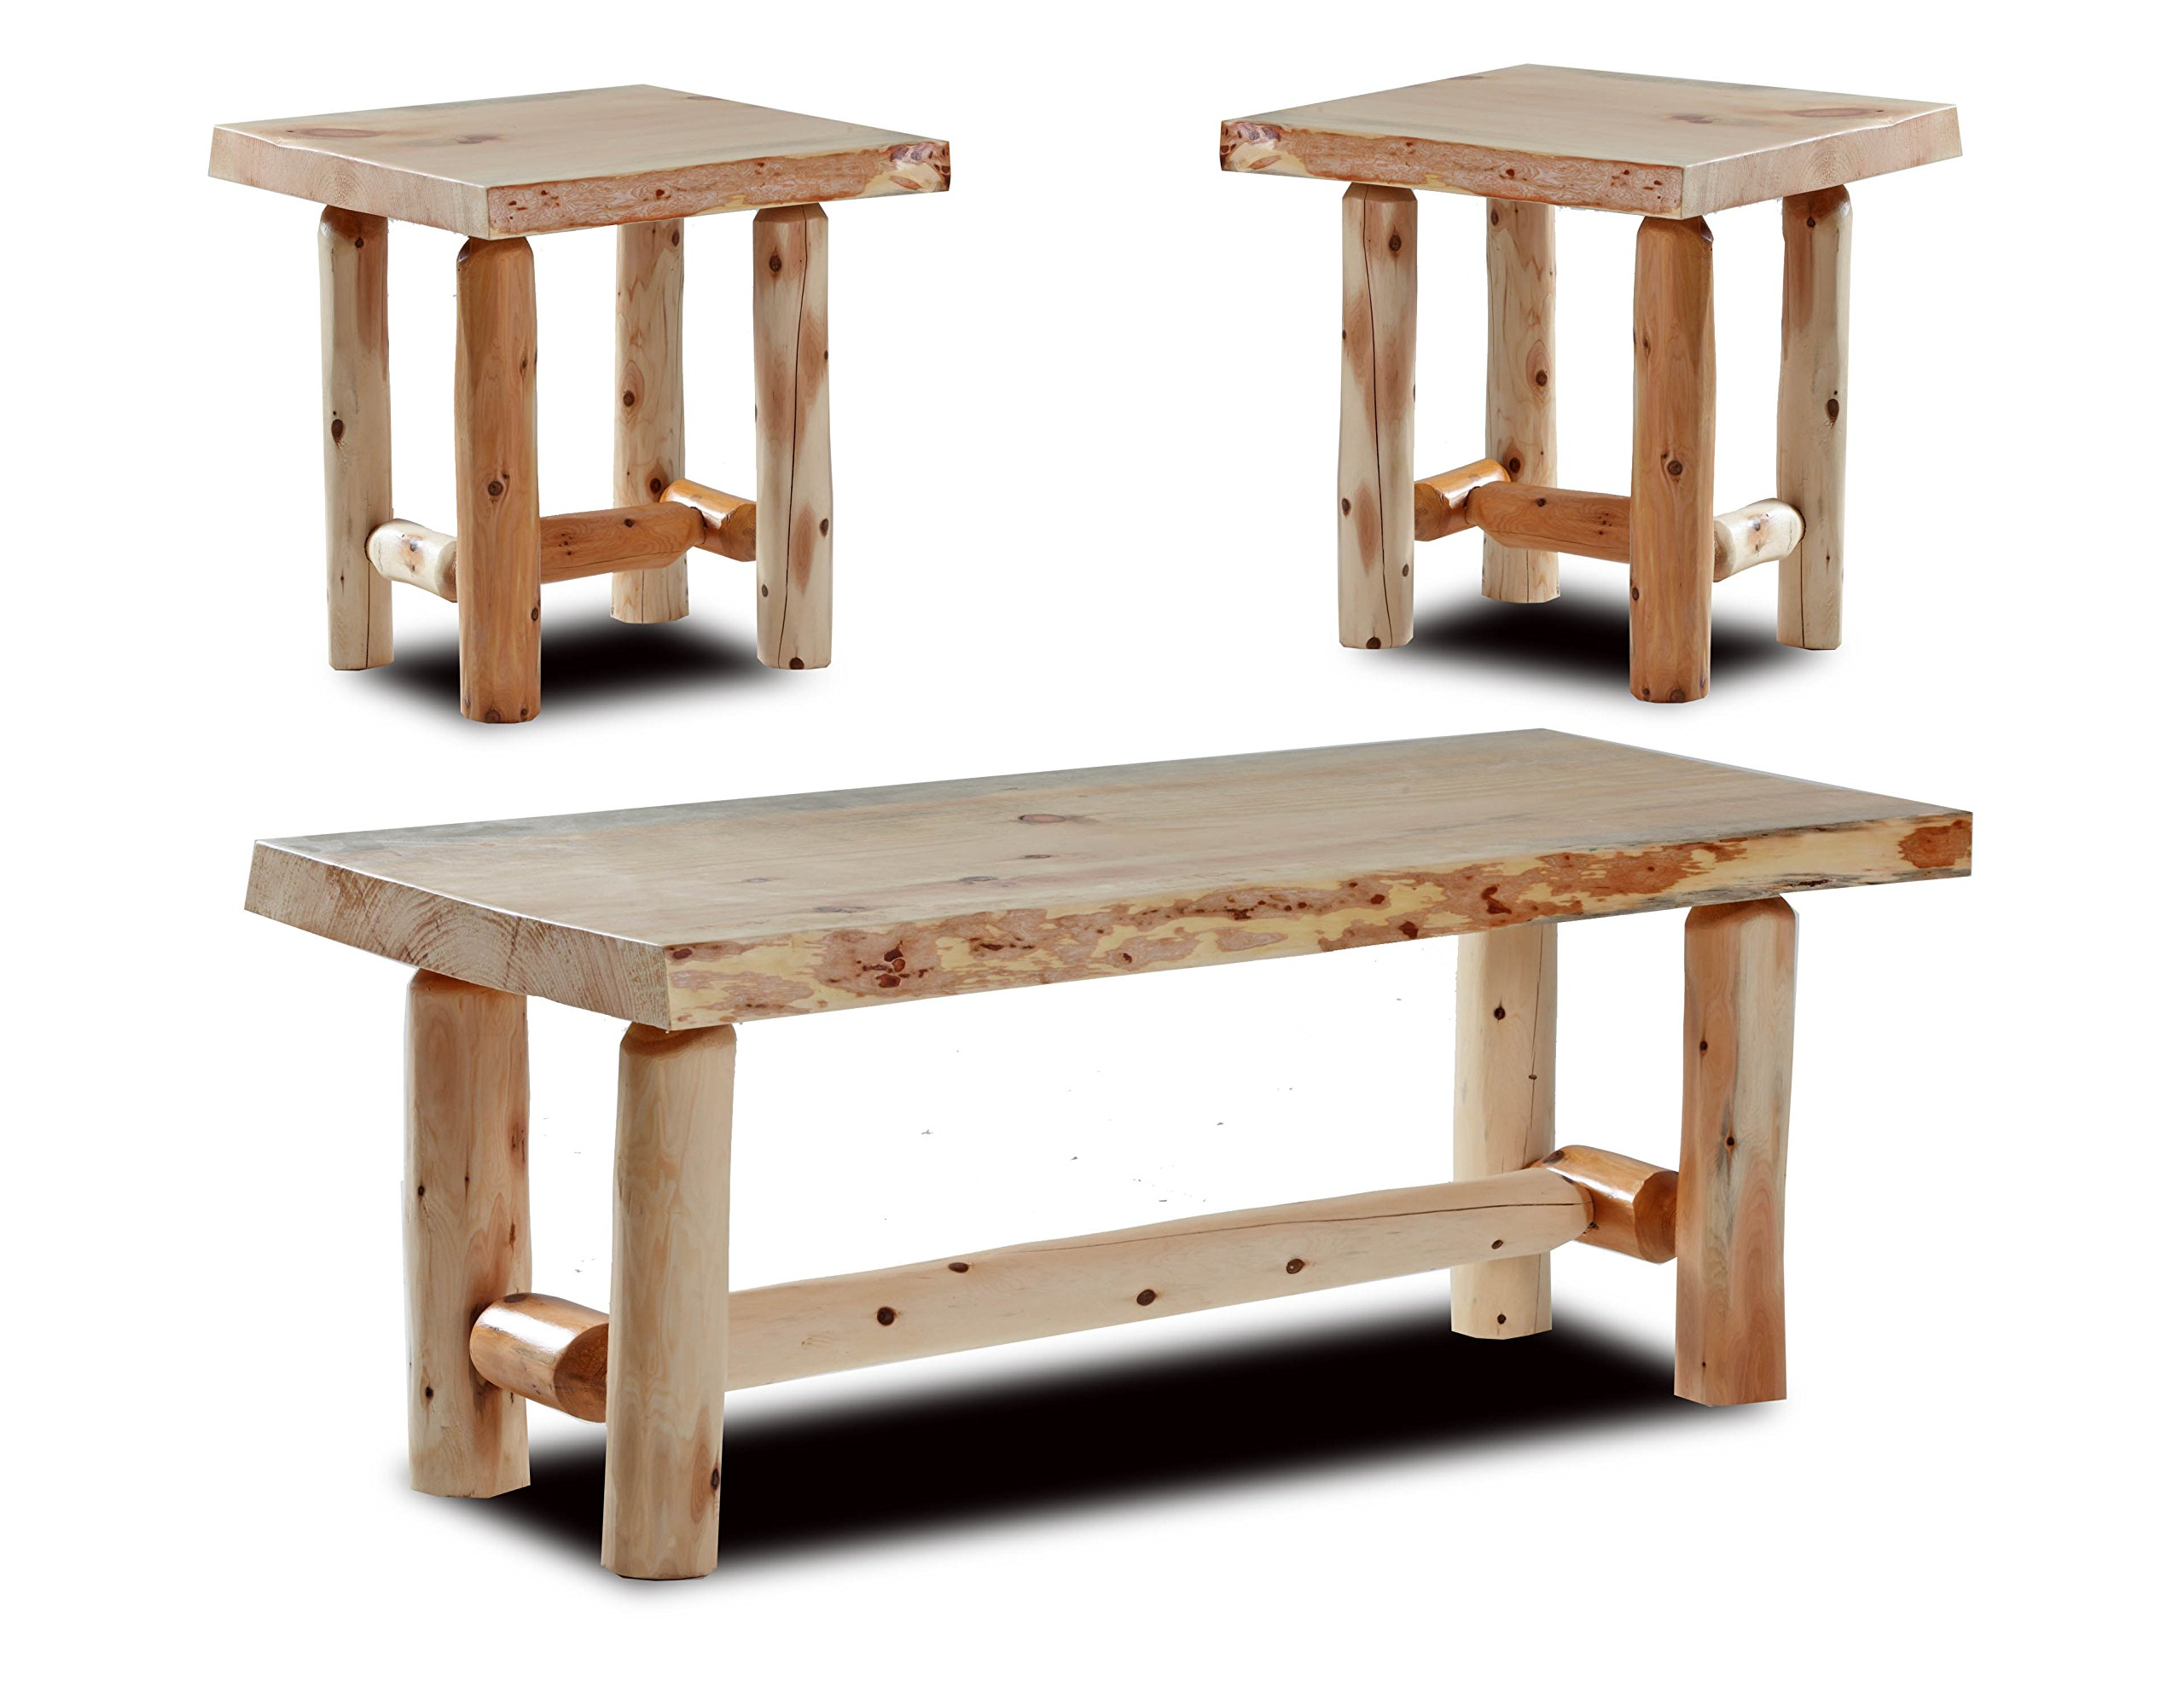 Rustic Log Coffee and End Table Set Pine and Cedar (Natural Clear) by Southern Rustic Logwerks